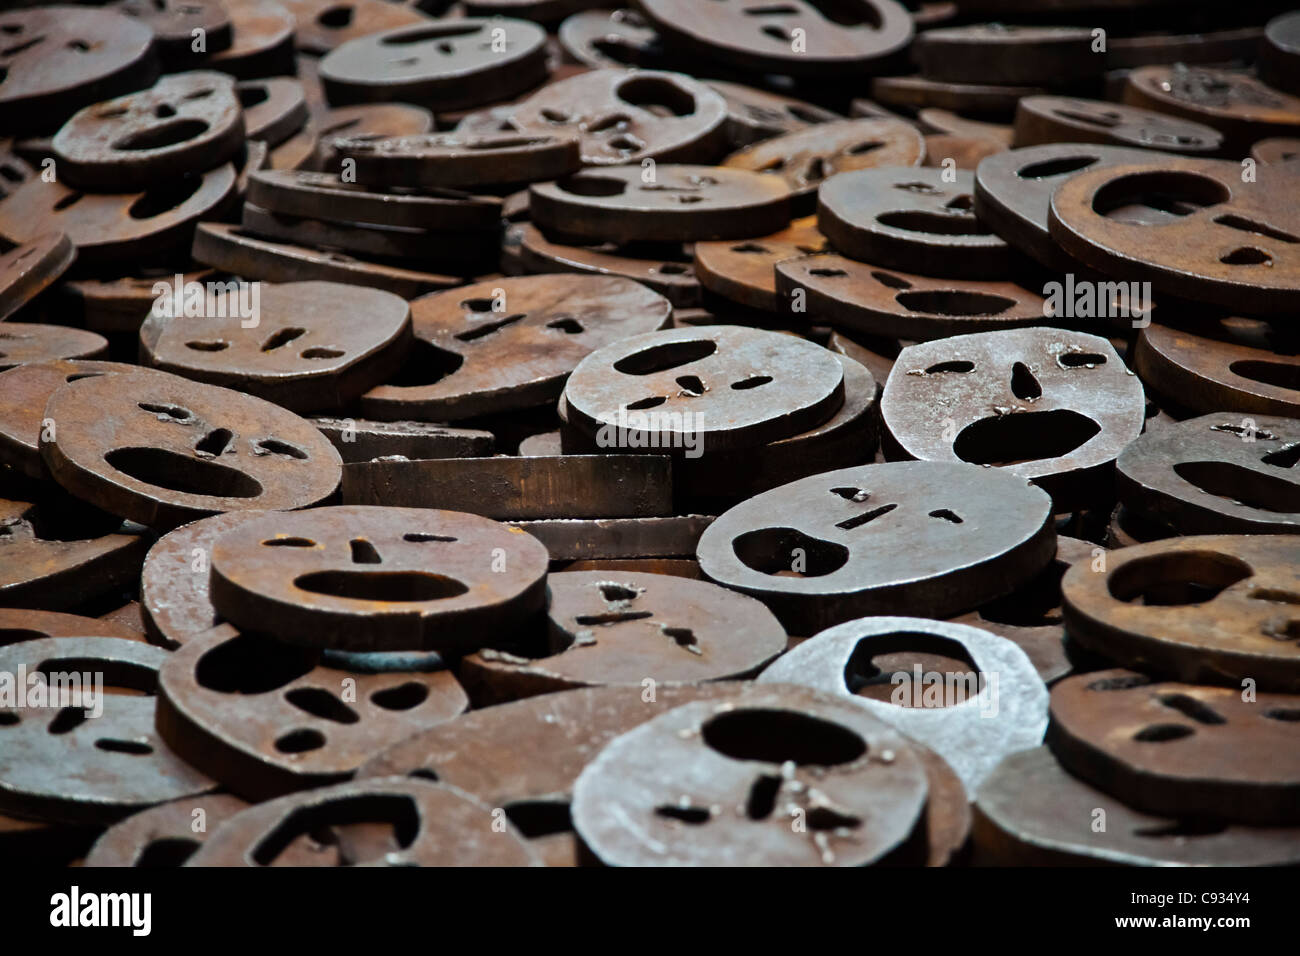 10000 open-mouthed iron plate faces cover the floor in the Jewish Museum, Berlin, Kreuzberg, Berlin, Germany. - Stock Image